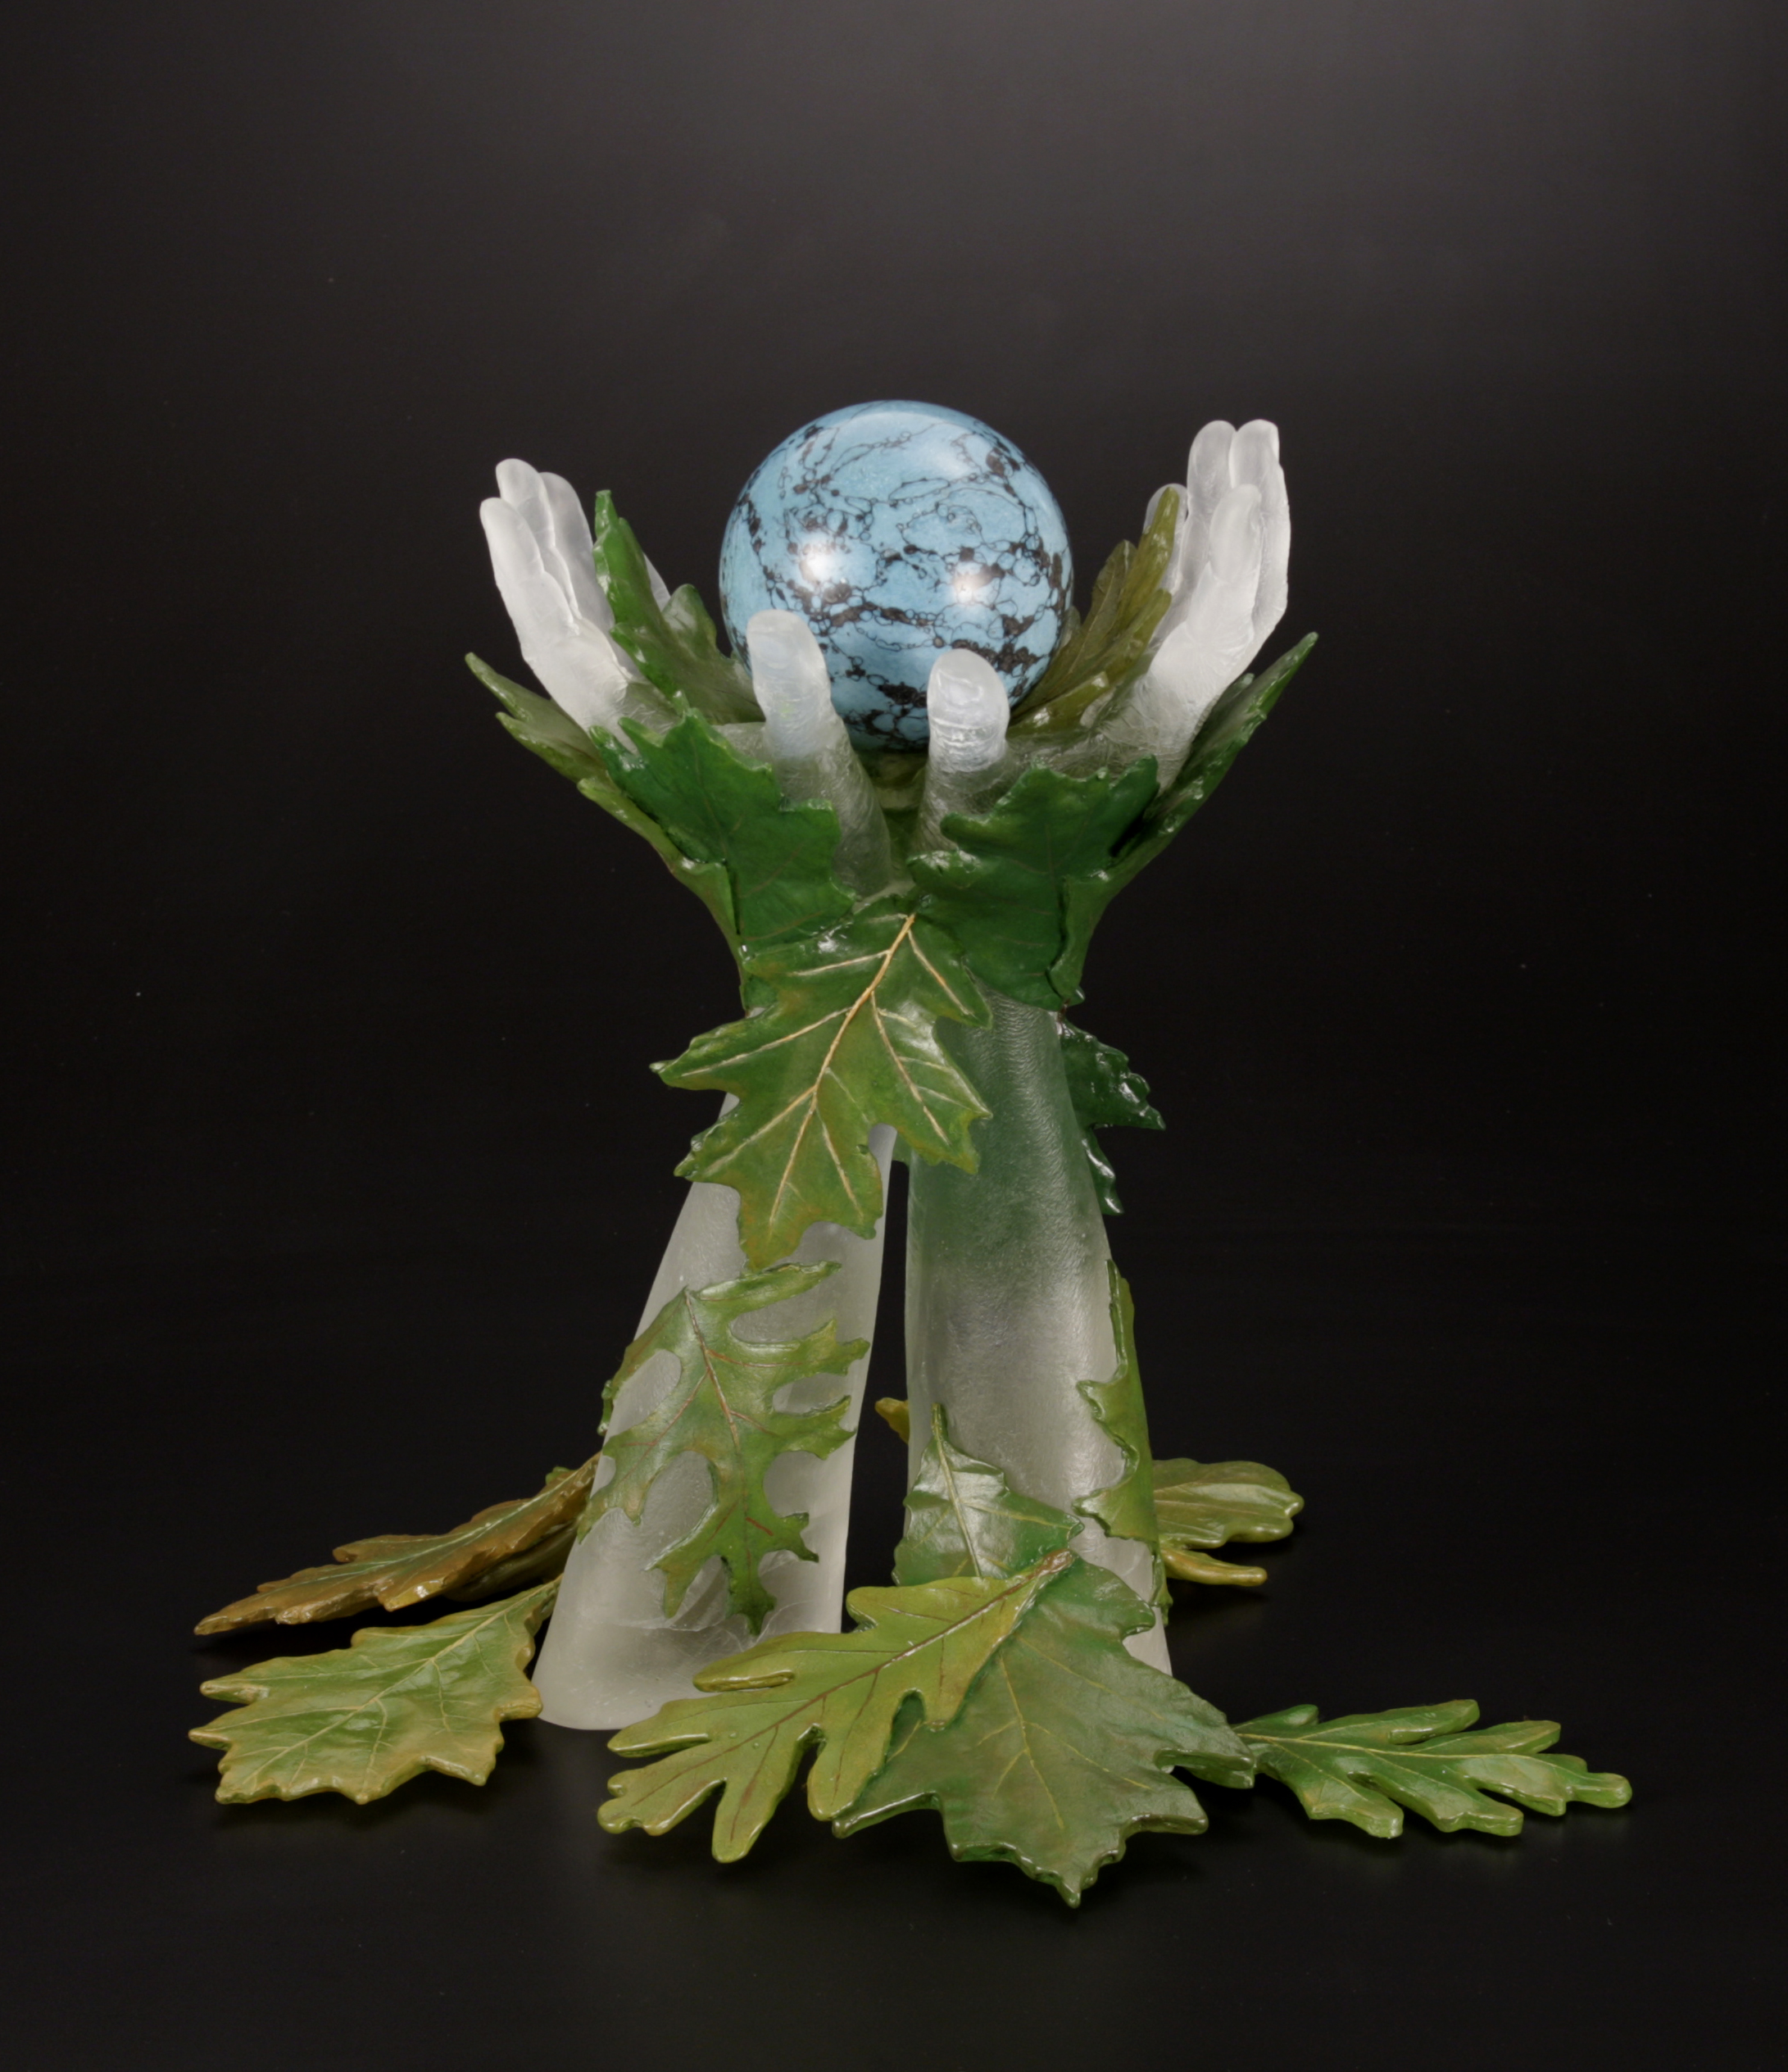 Sculpture of hands cast in clear glass surrounded by oak leaves painted with oil paint holding turquoise sphere.